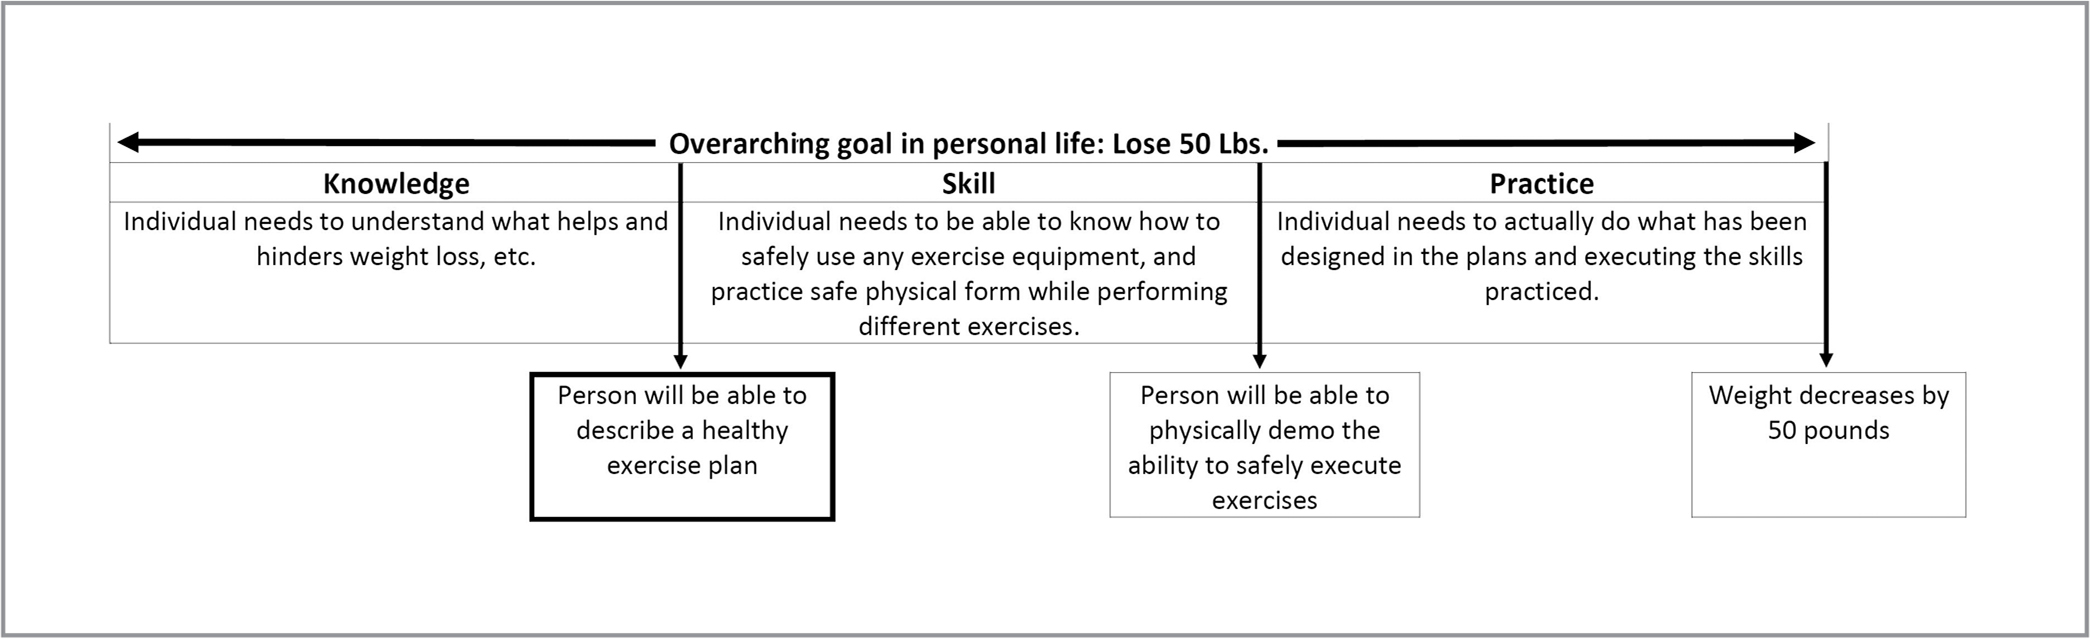 Incremental goals applied outside of continuing nursing education. ©2019, Caroline Baughman, all rights reserved. Used with permission.